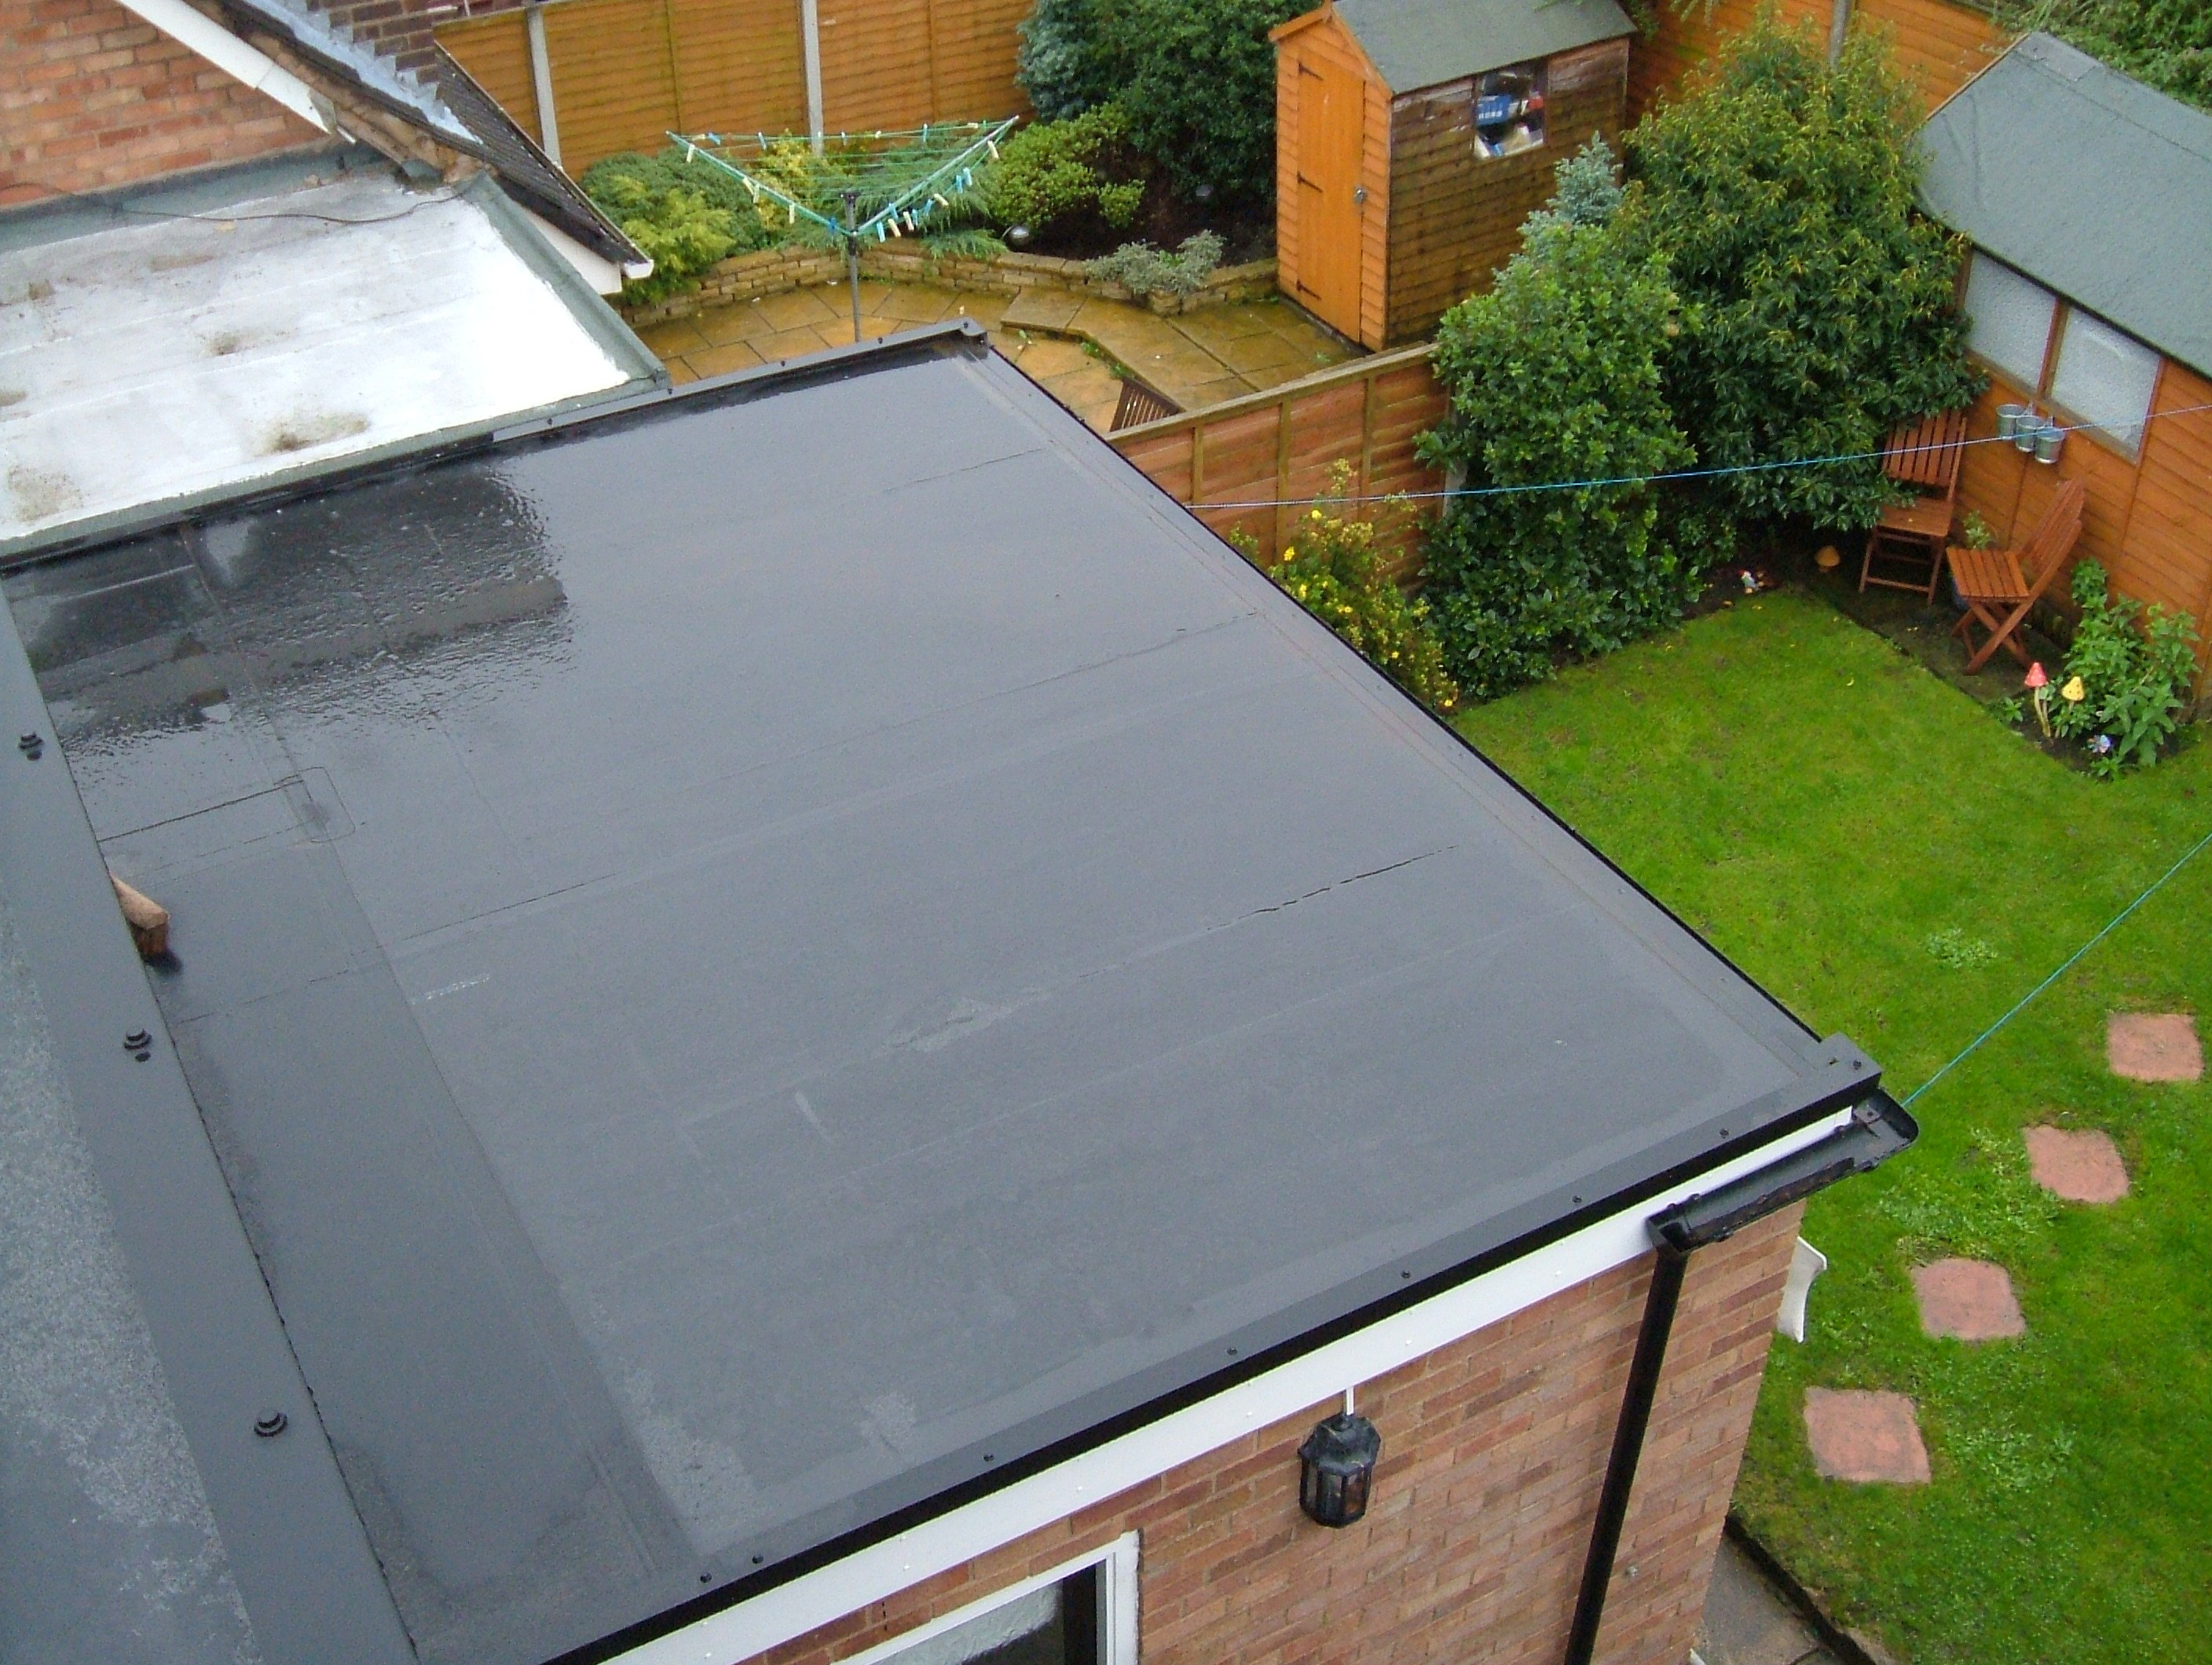 Epdm Rol Flat Roof Materials Installation Costs 2019 Pvc Vs Tpo Epdm